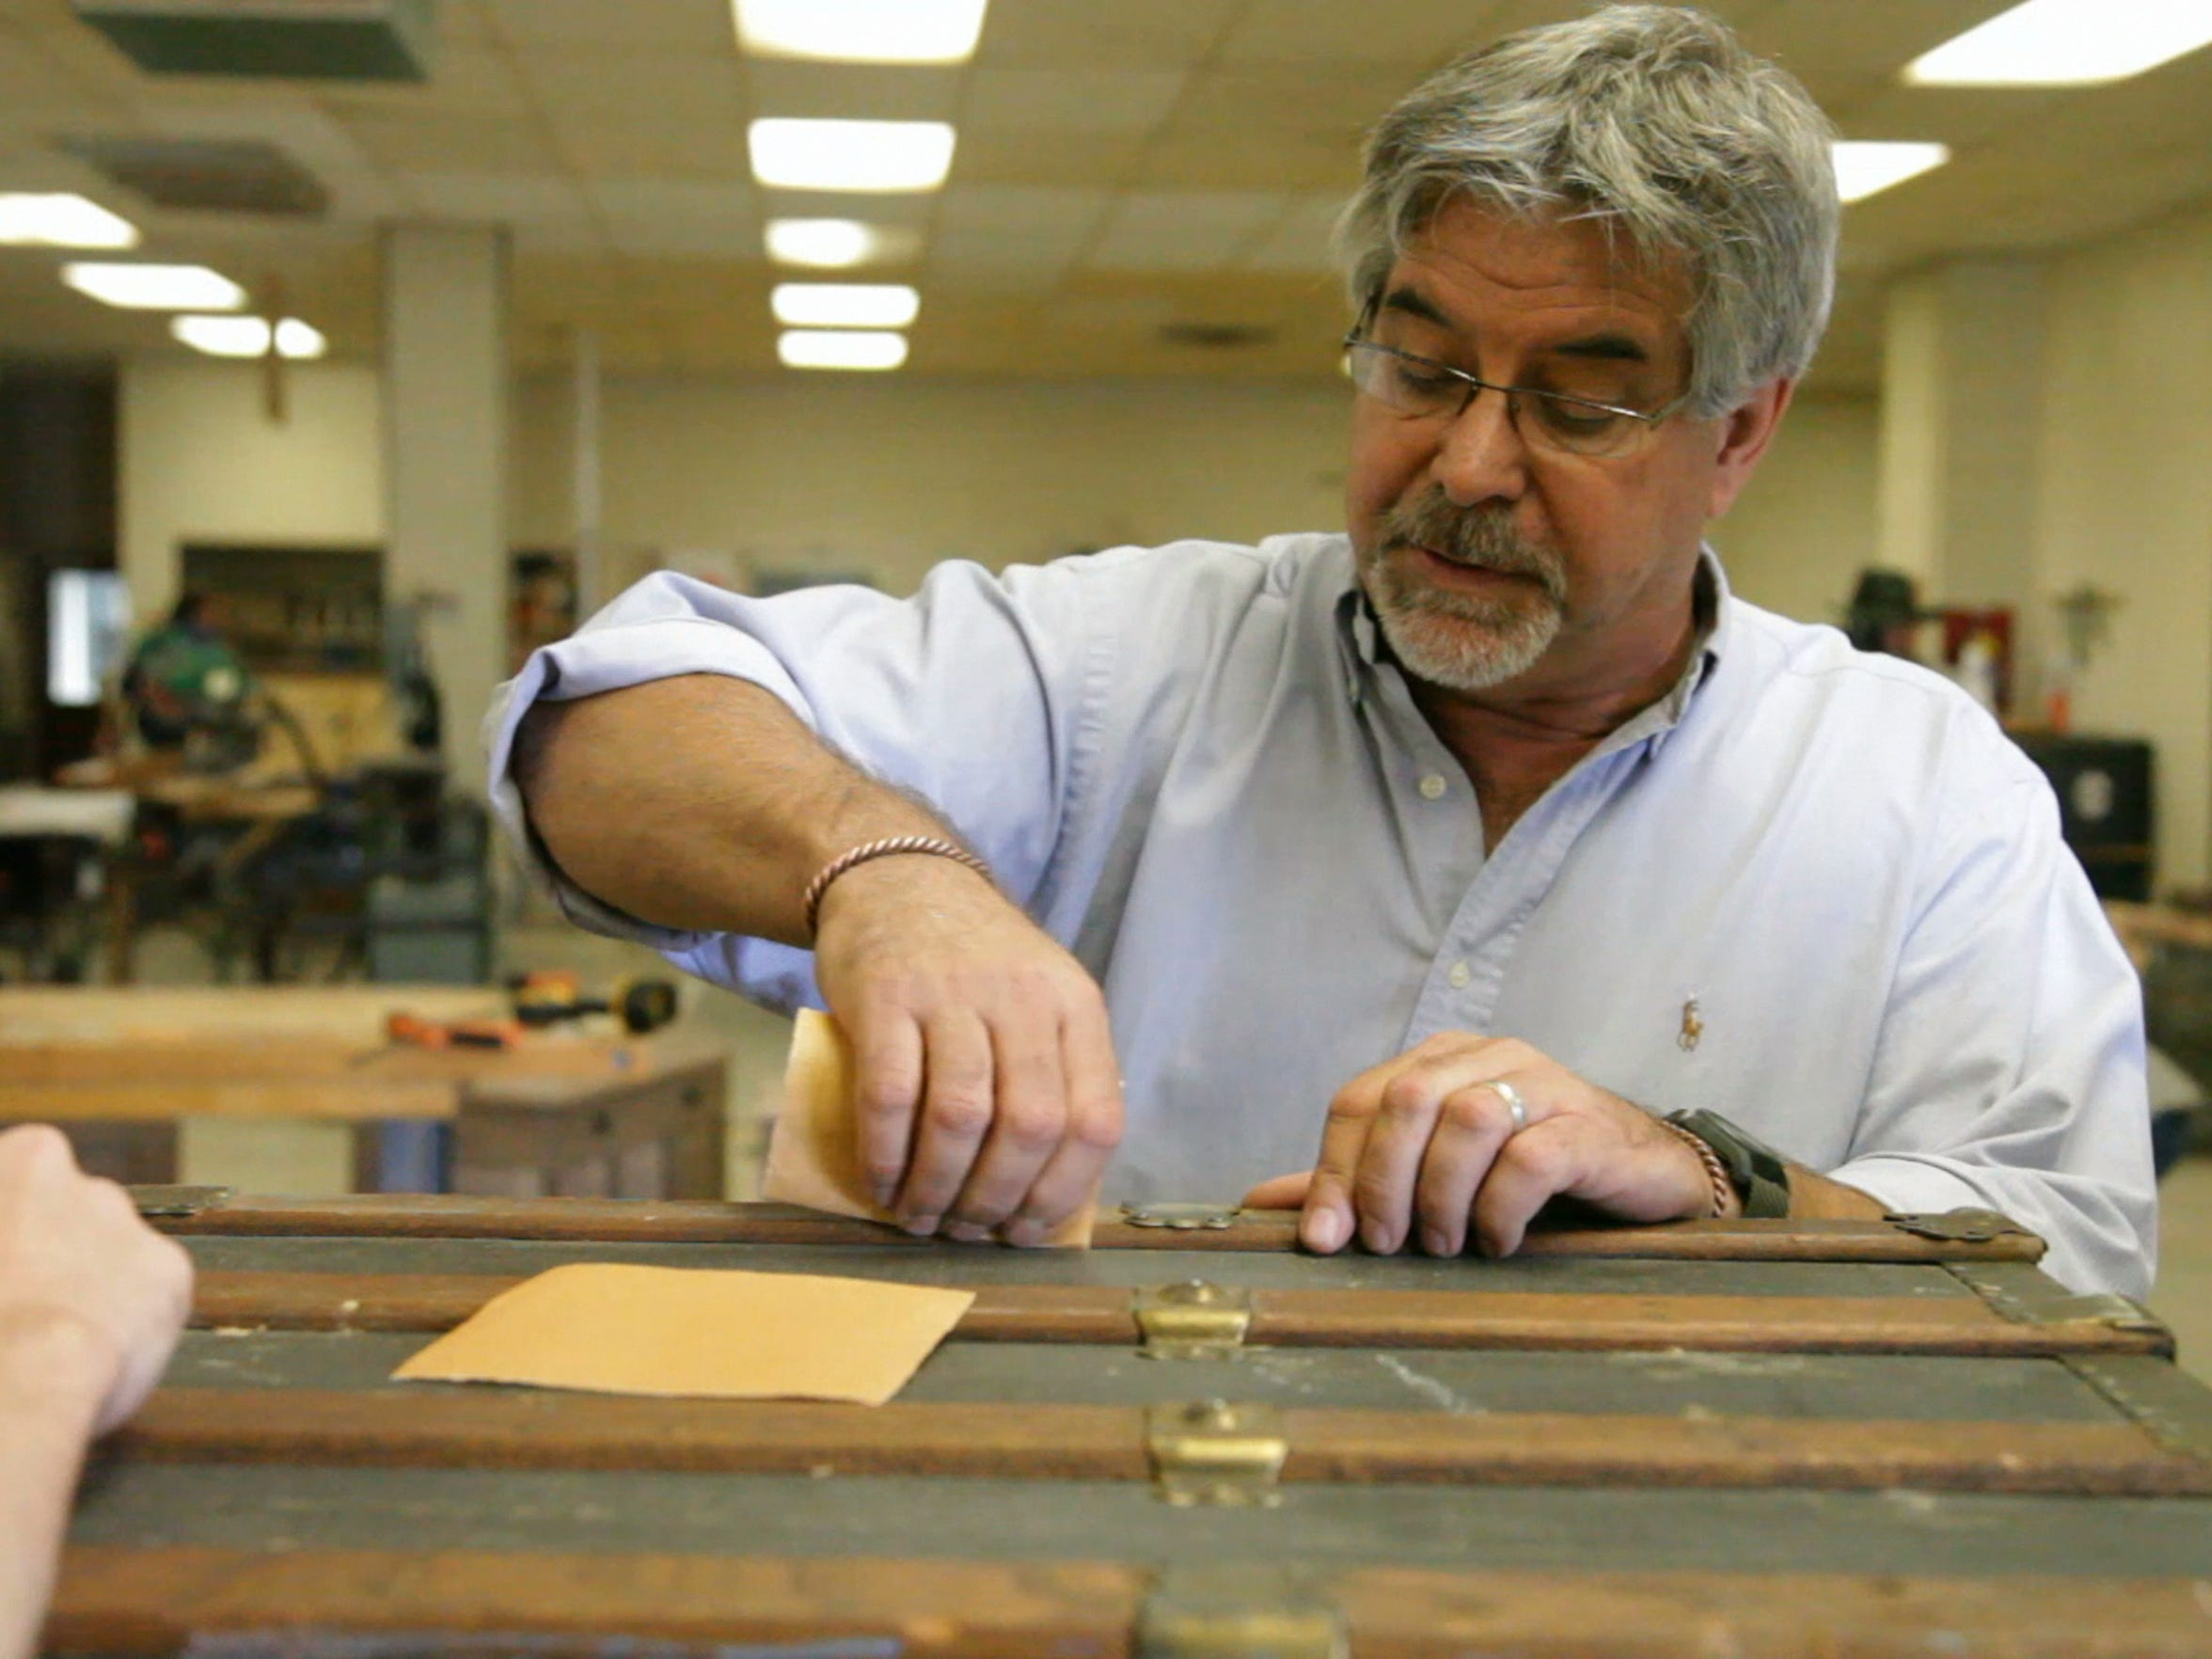 WWRC building trades instructor Dwight Foster gives